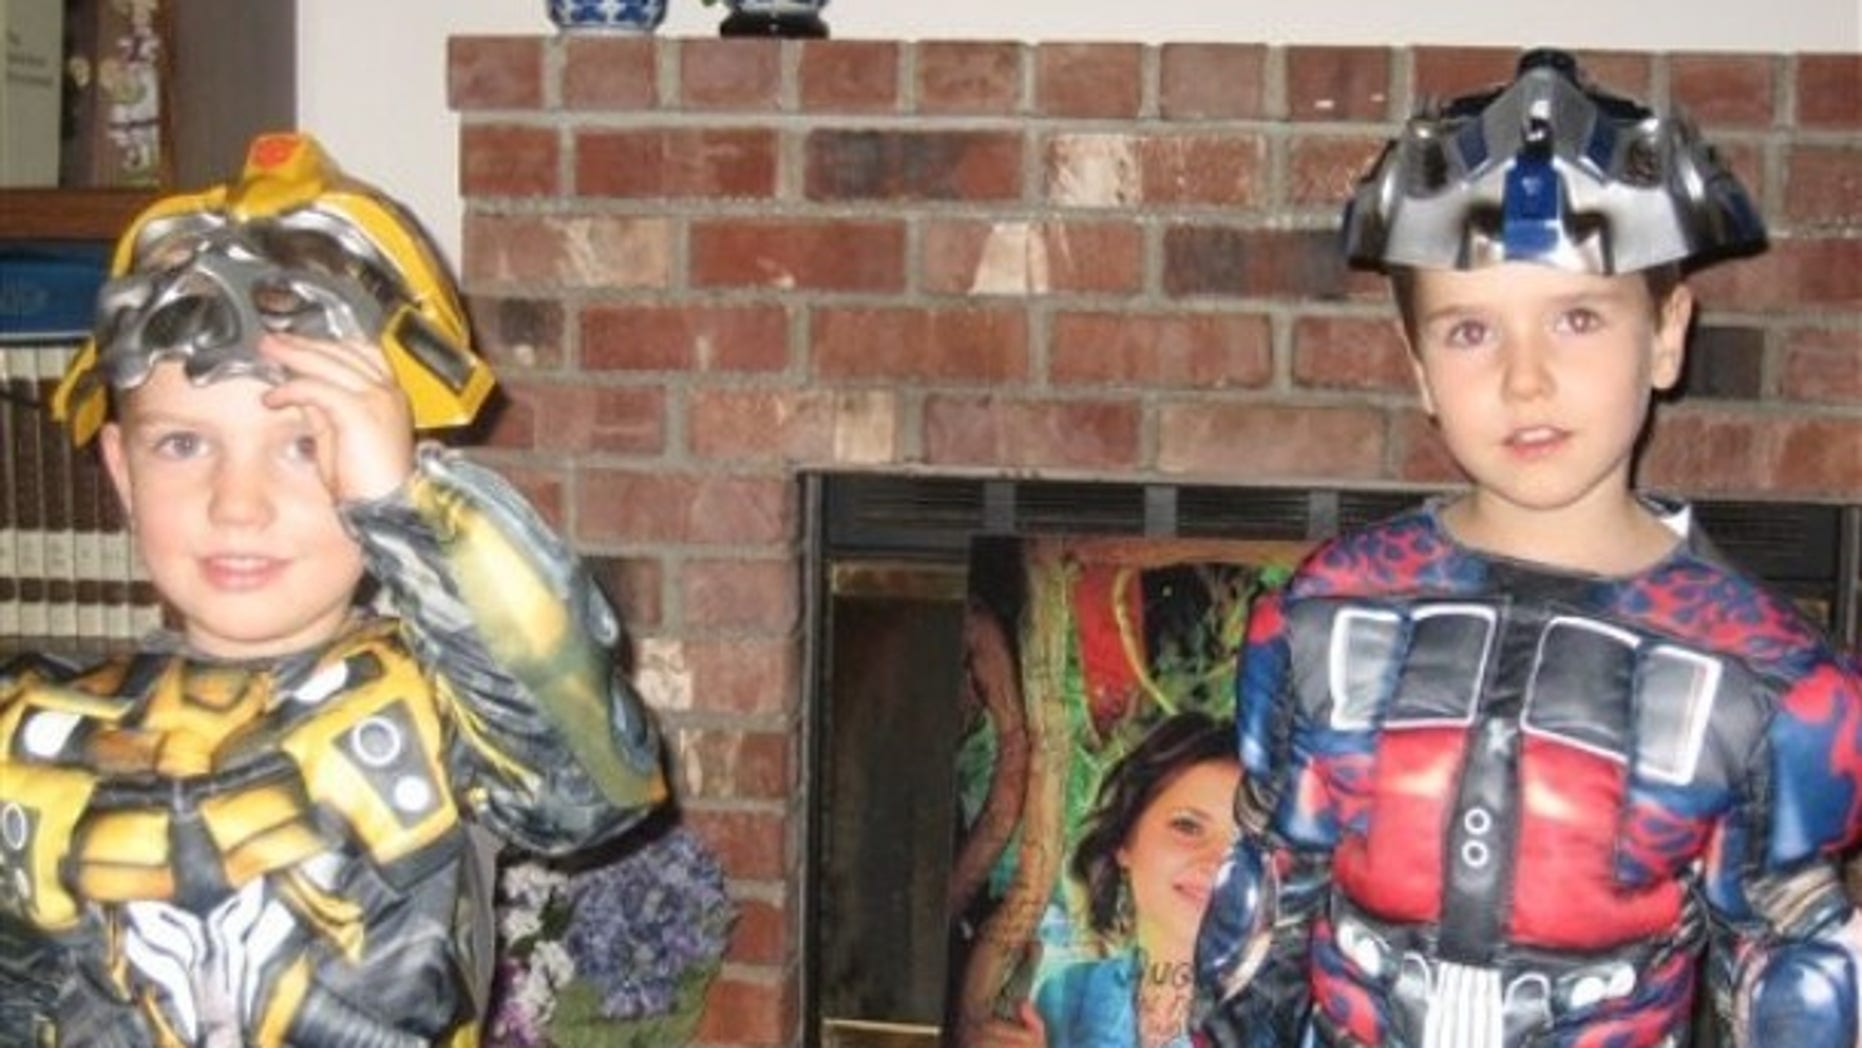 File: Braden, left, and Charlie Powell. The boys were killed along with their father, Josh Powell, on Sunday in what police said was an intentional fire set by Powell.